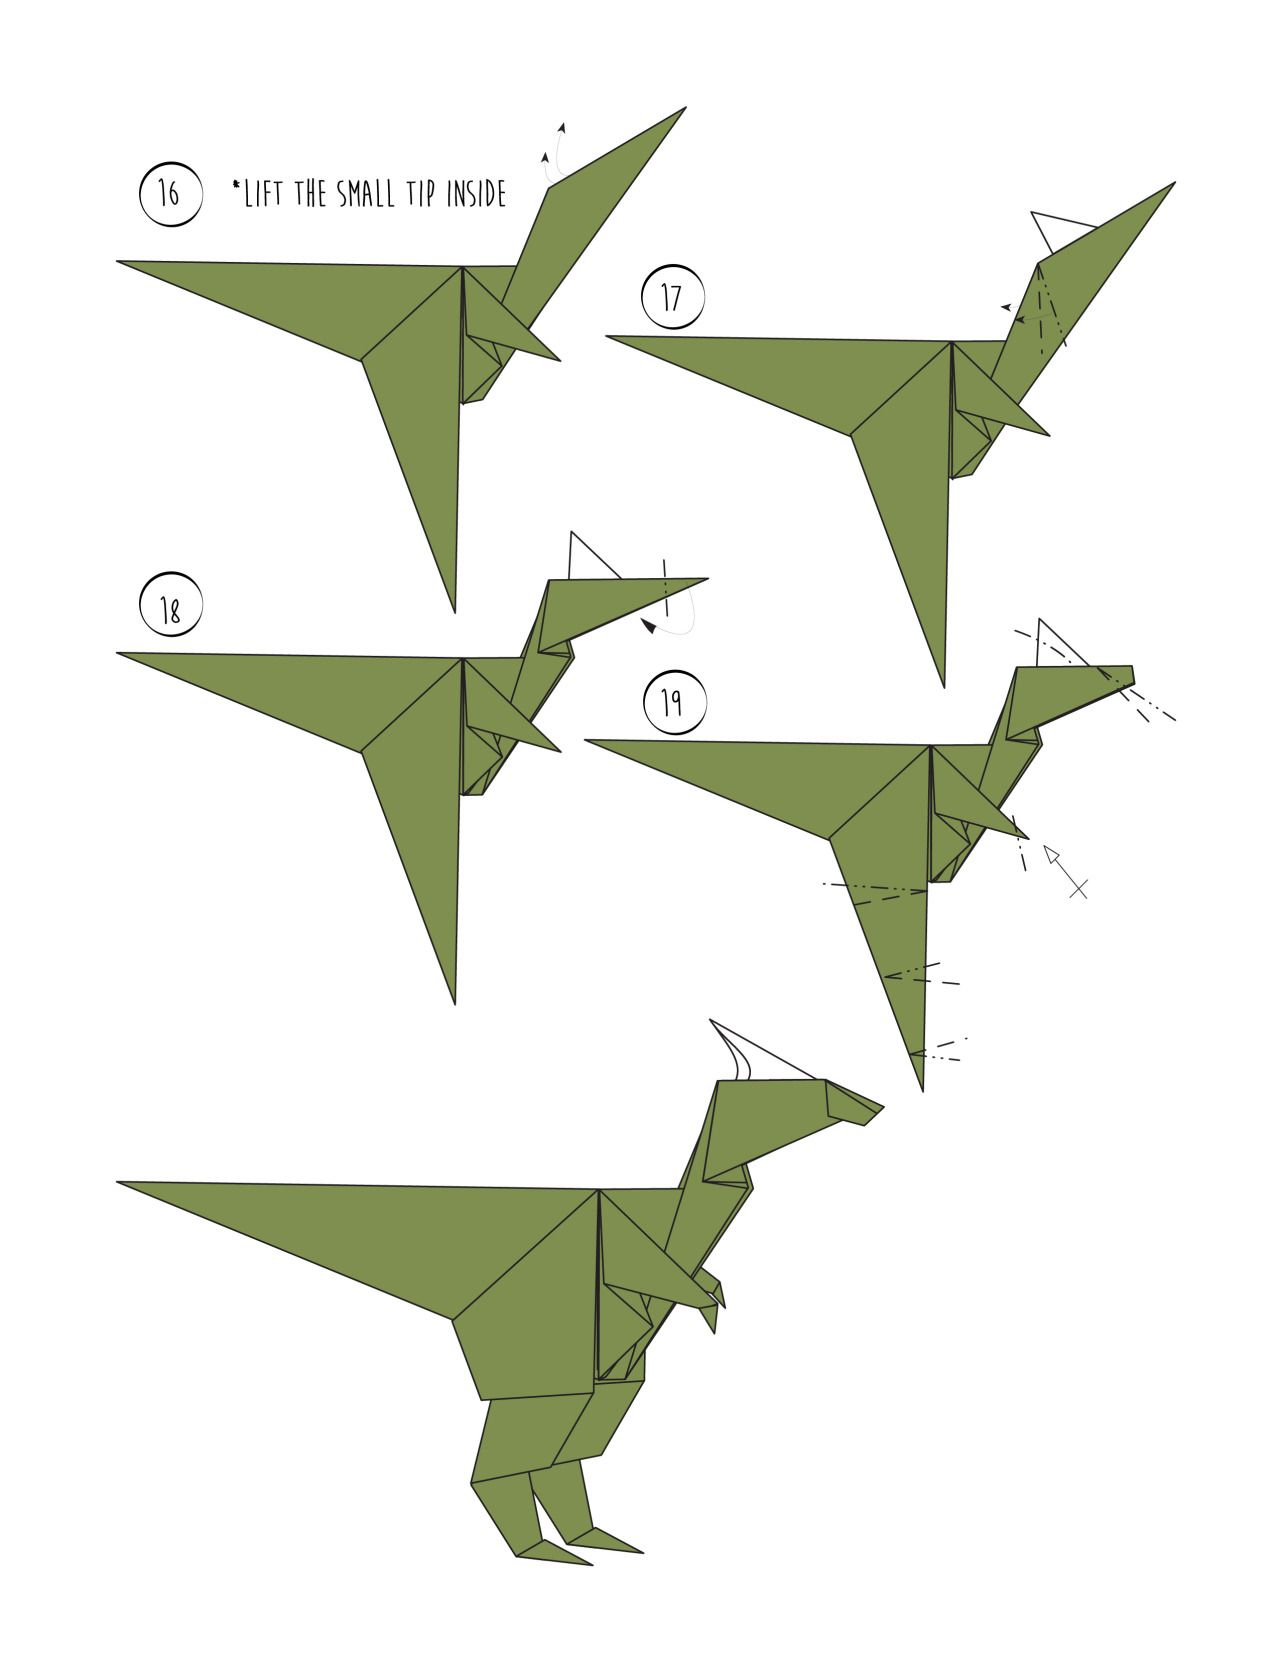 rawr origami dinosaur  and 2 more ways to make an easy origami dinosaur diagrams easy origami dinosaur diagrams